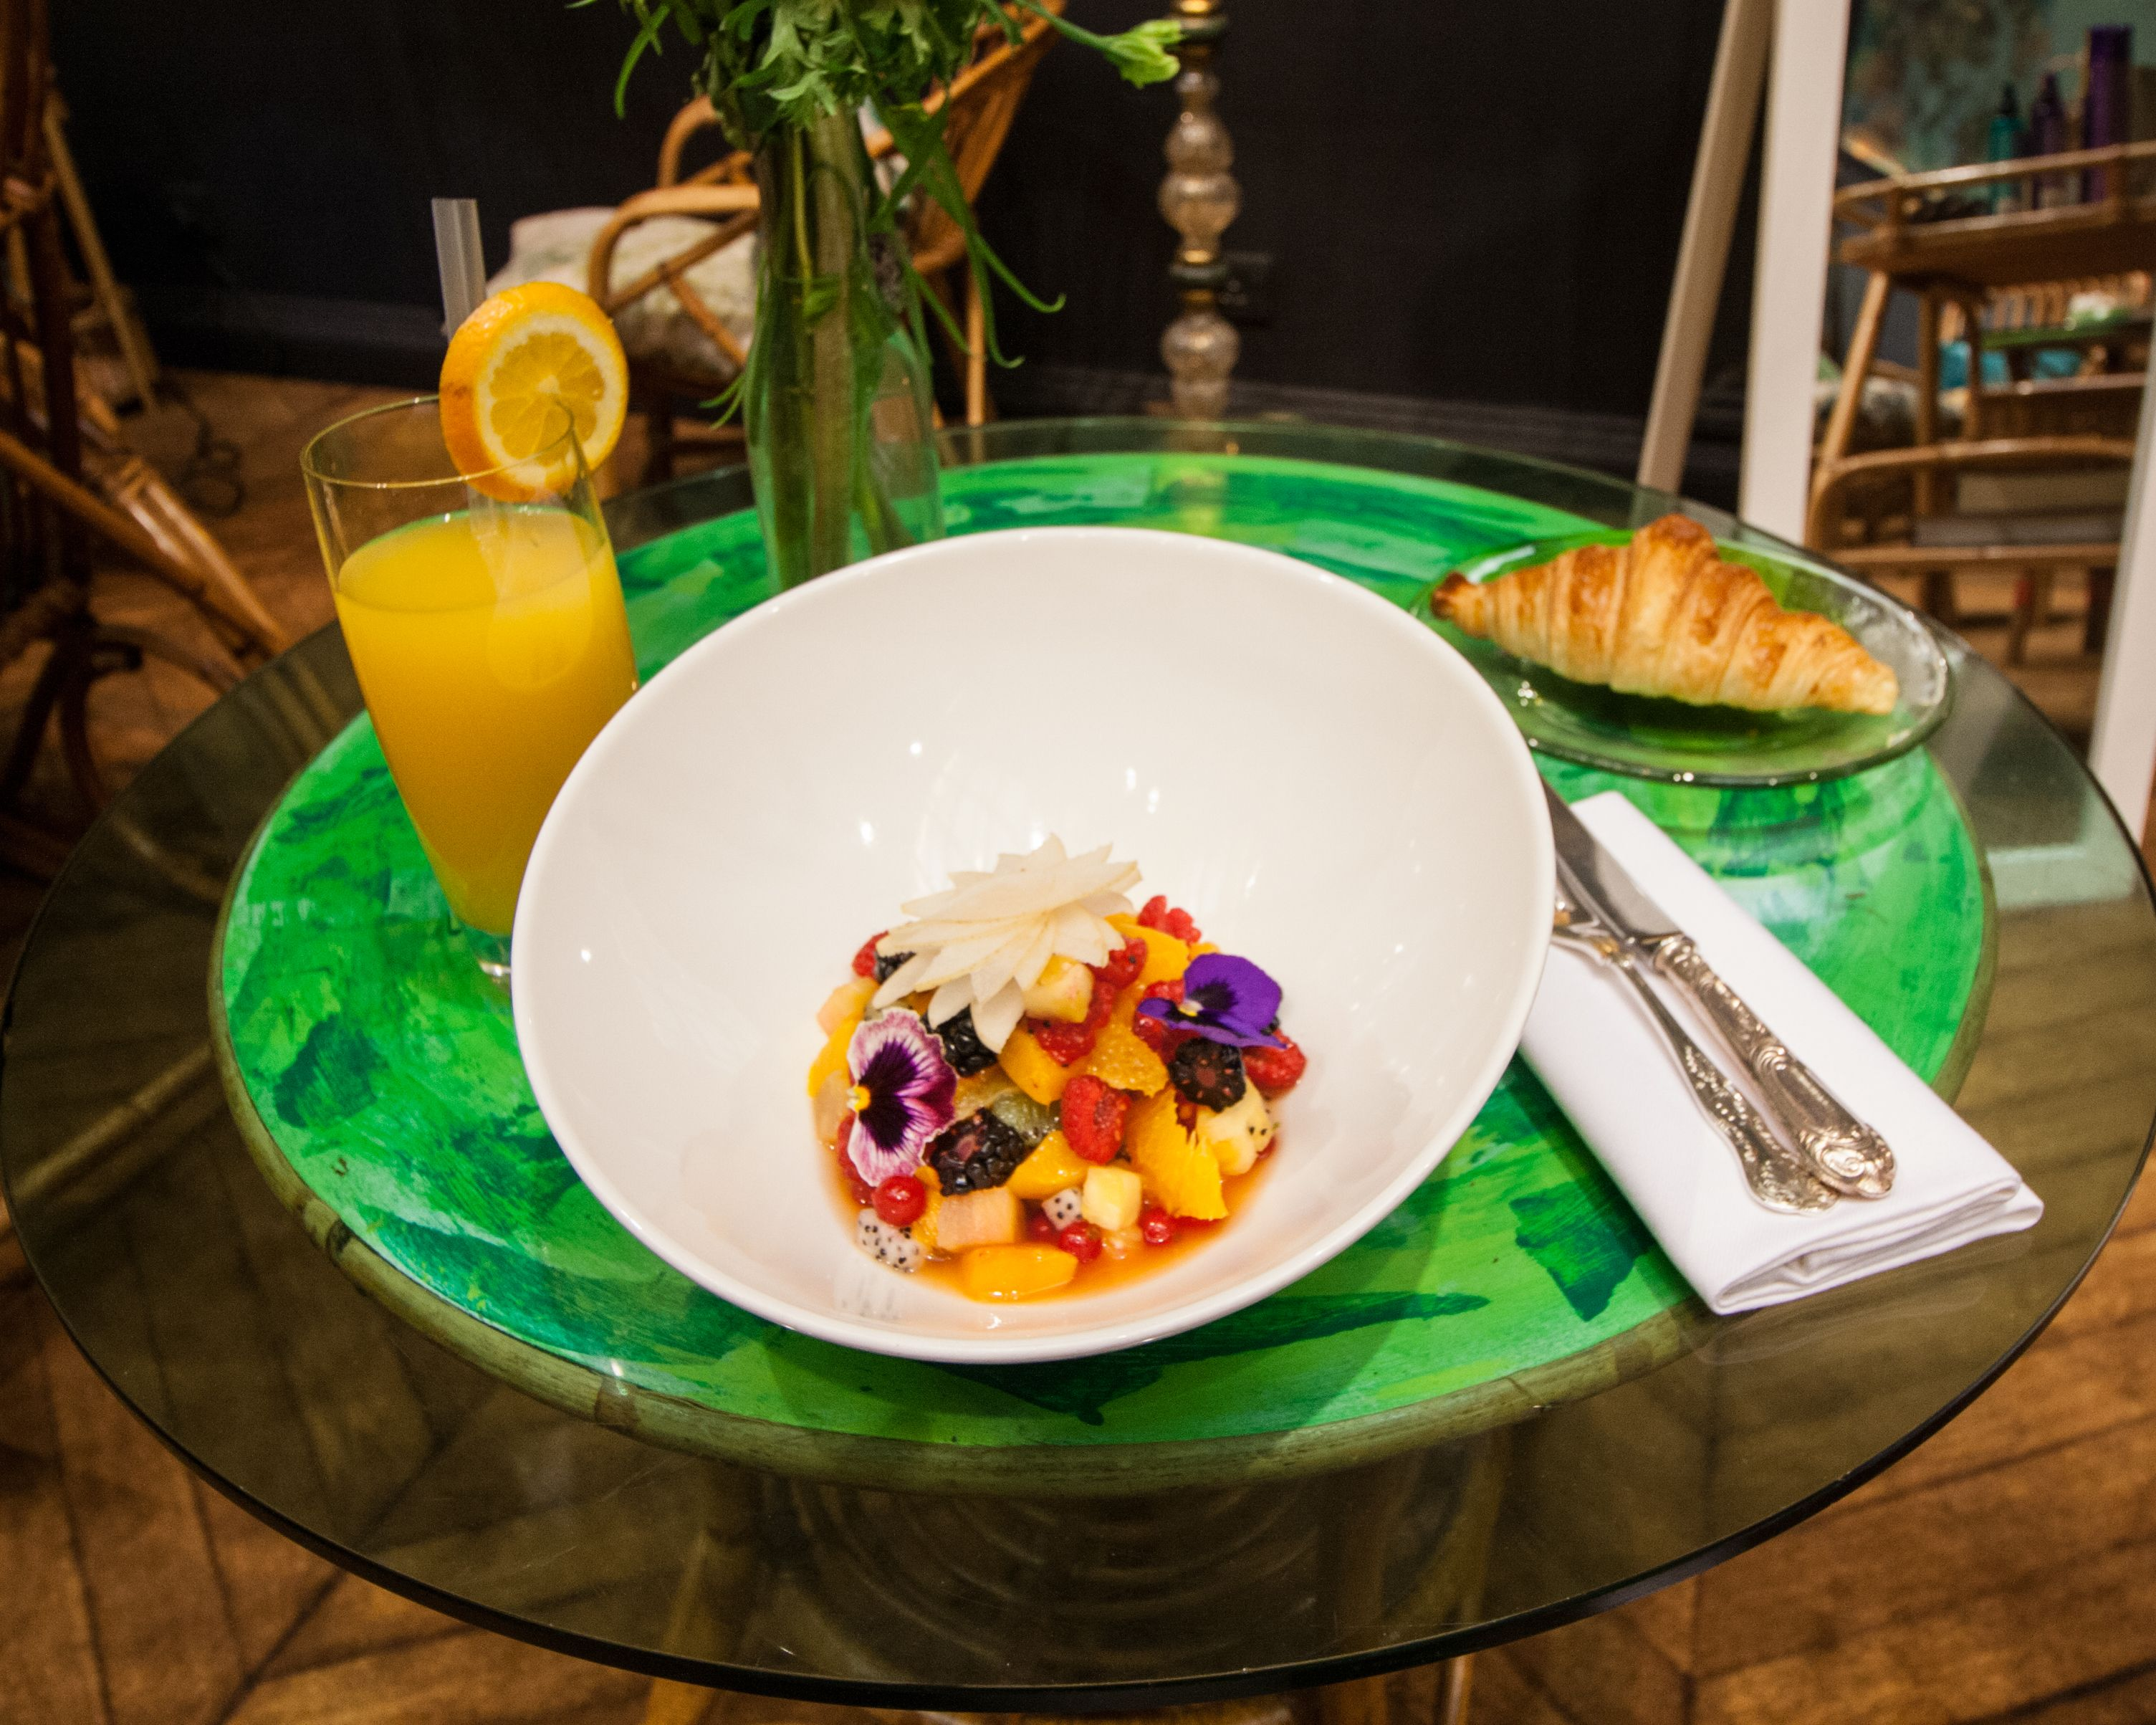 Fruit Salad From The Breakfast Menu In The Glade At Sketch